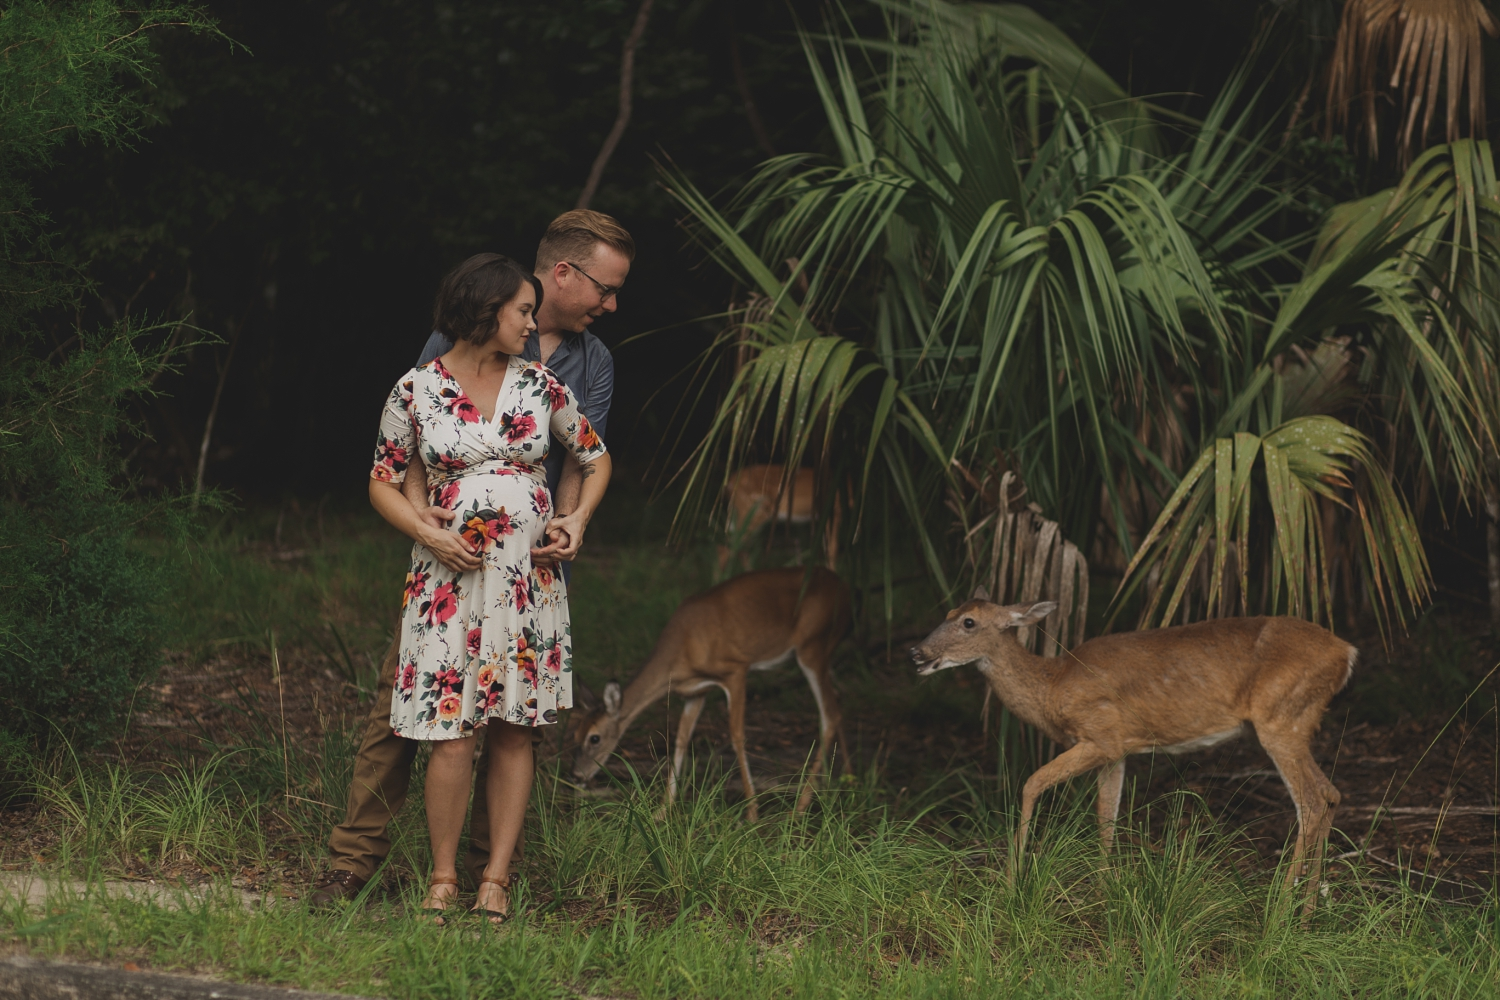 Stacy Paul Photography -  florida nature boho maternity photographer_0009.jpg